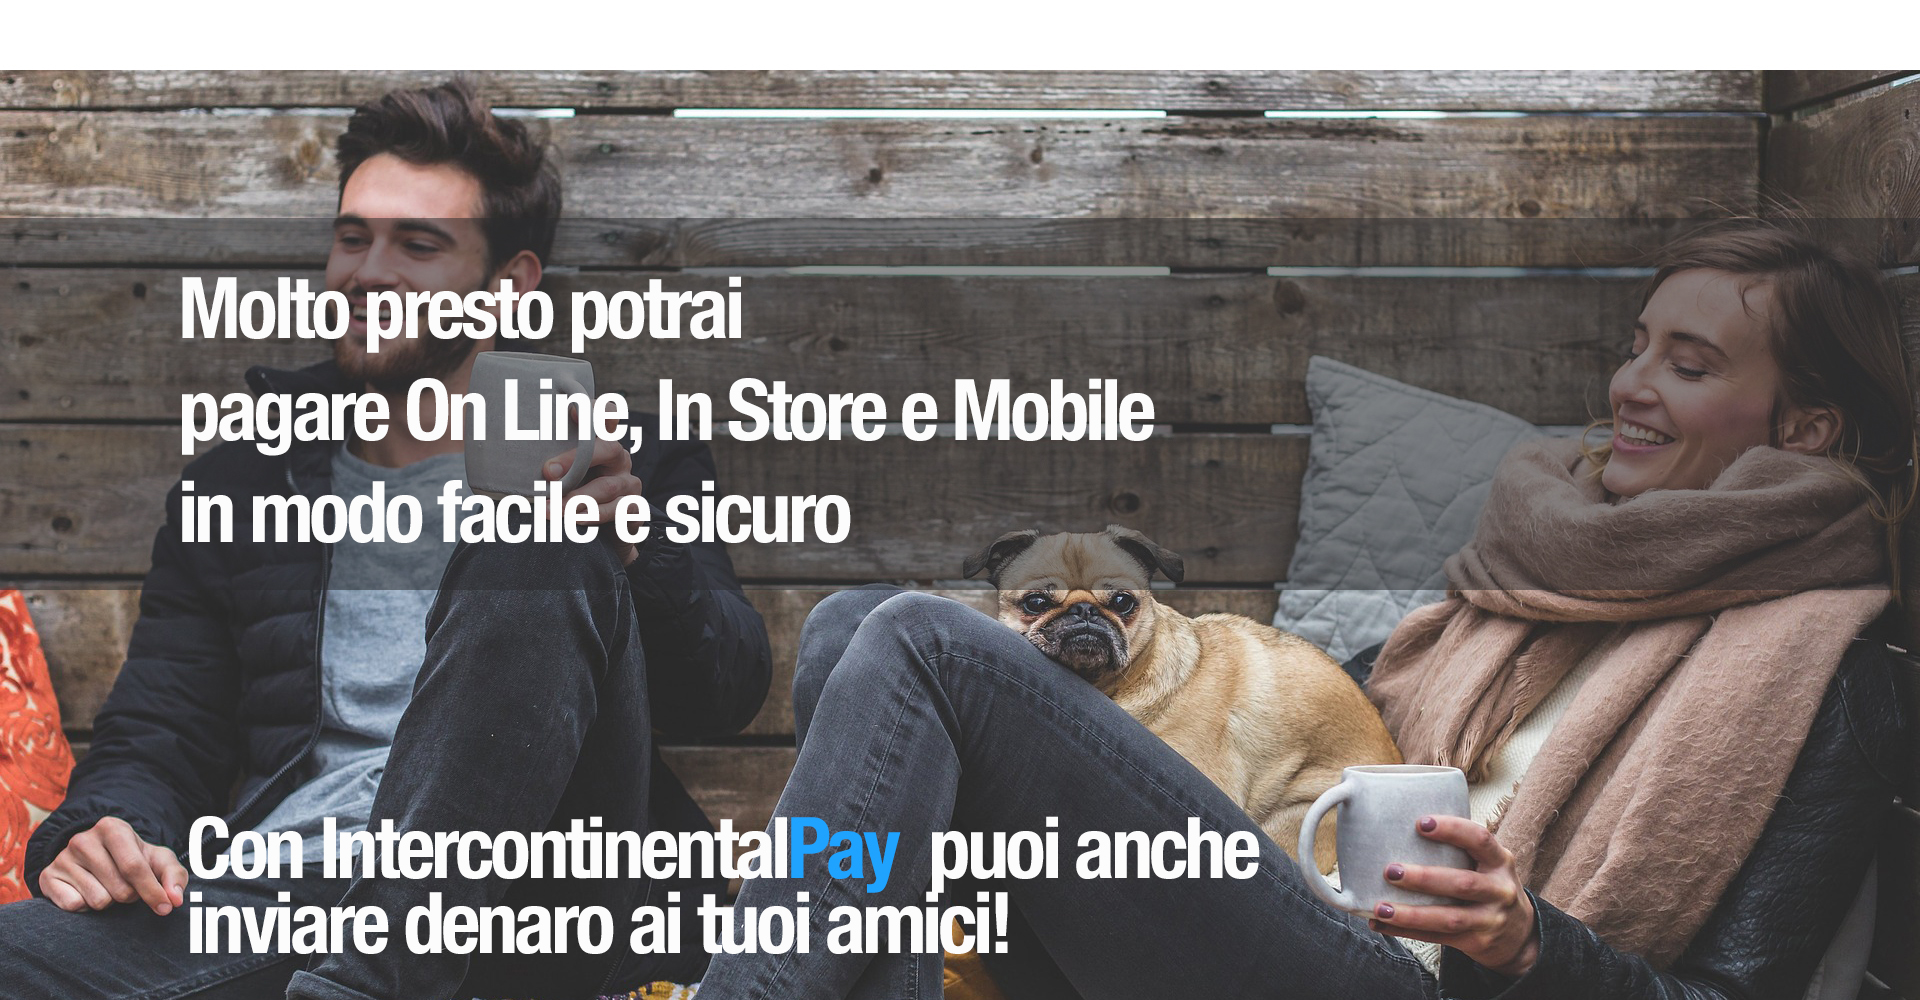 IntercontinentalPay pay payments pagamenti digitali mobile sicuri online store sharing scambio money